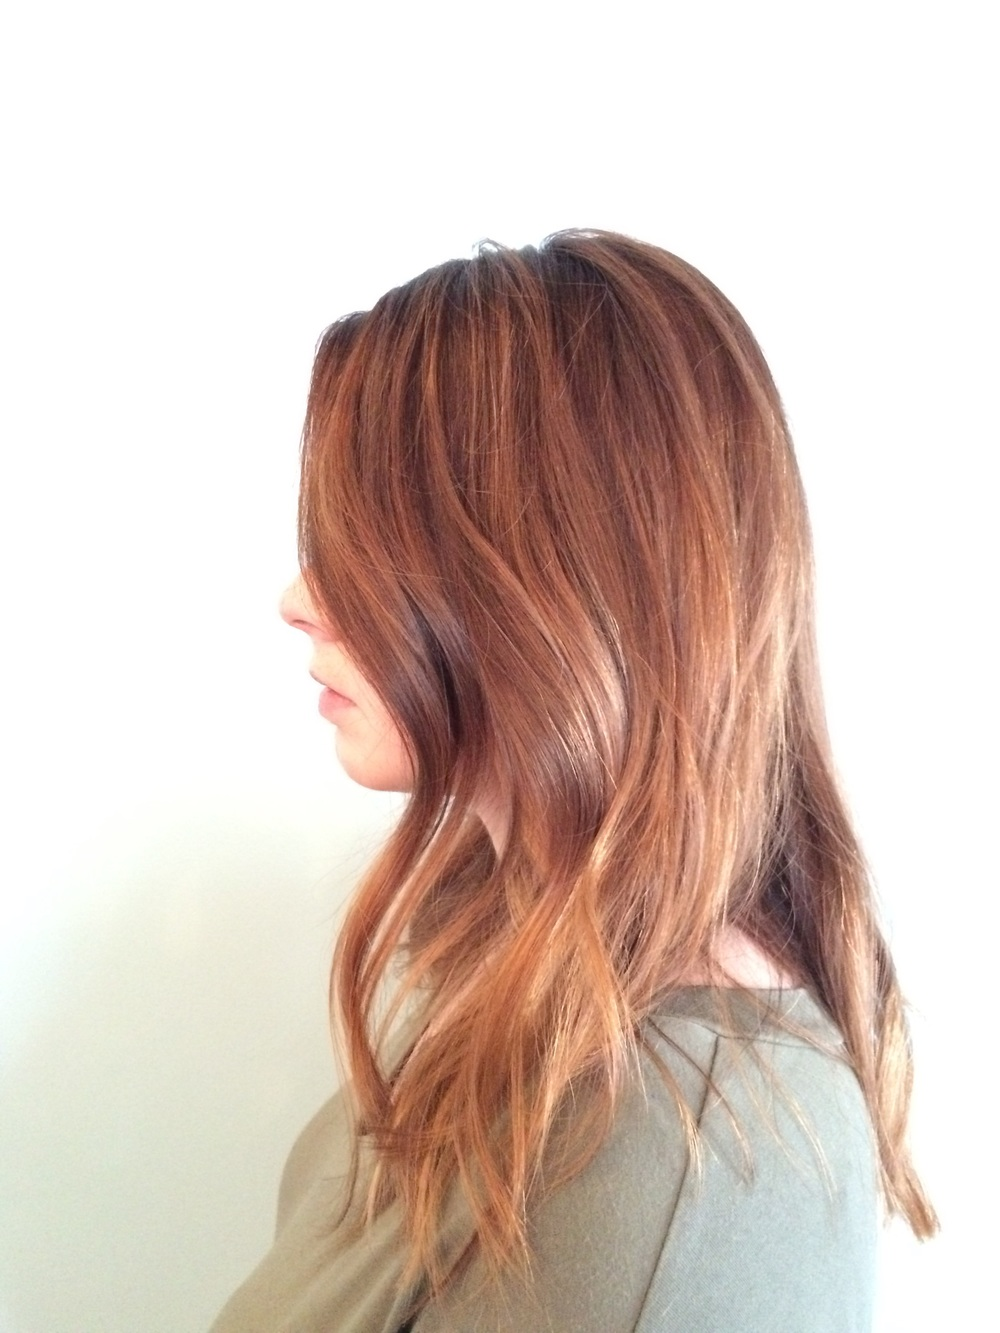 BALAYAGE HIGHLIGHTS on Amanda      by: Kristen Carnes